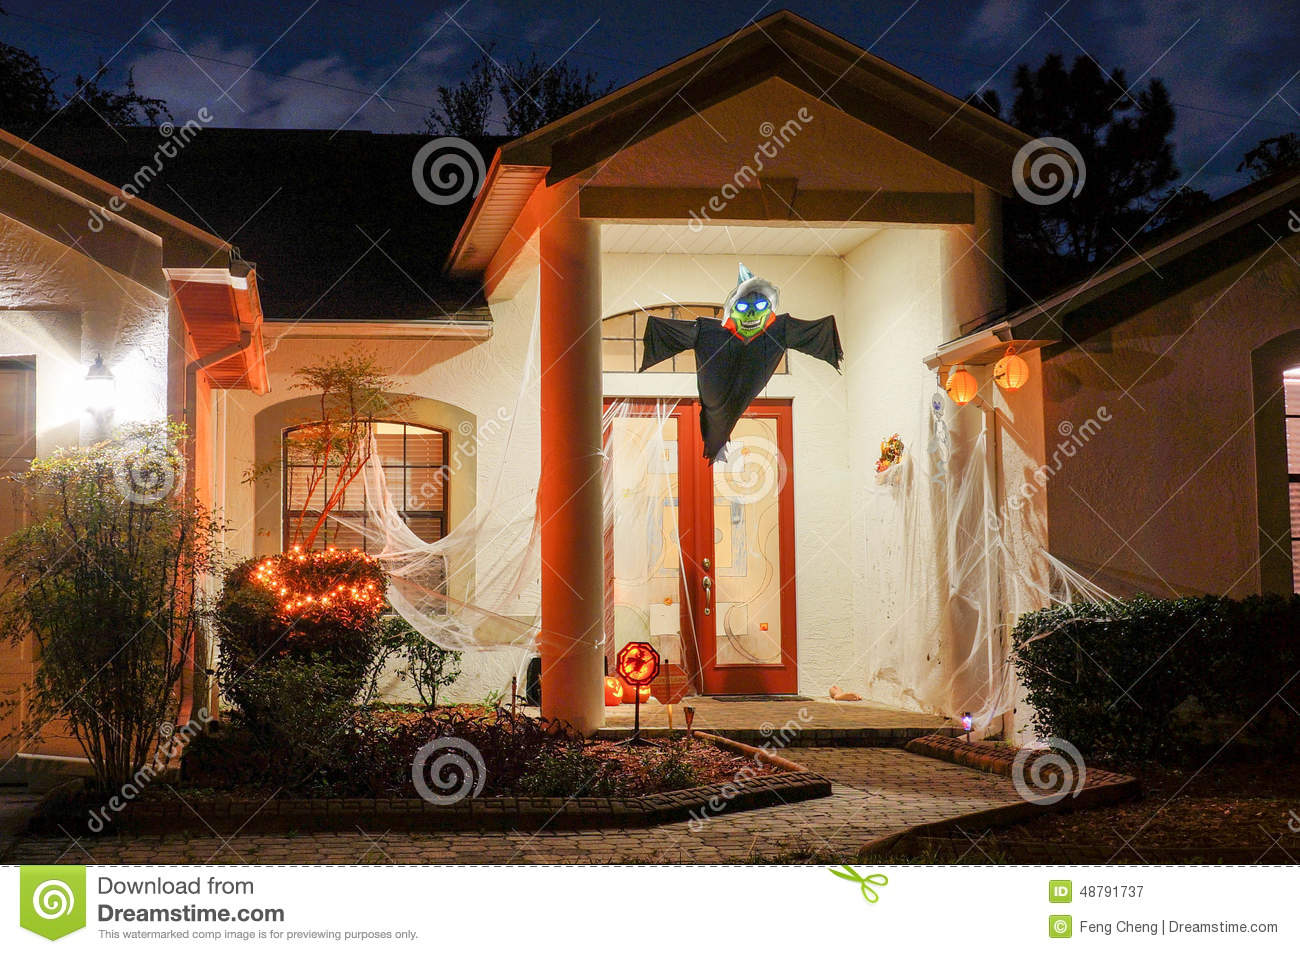 Halloween dekoration in einem haus stockbild bild 48791737 for Dekoration haus